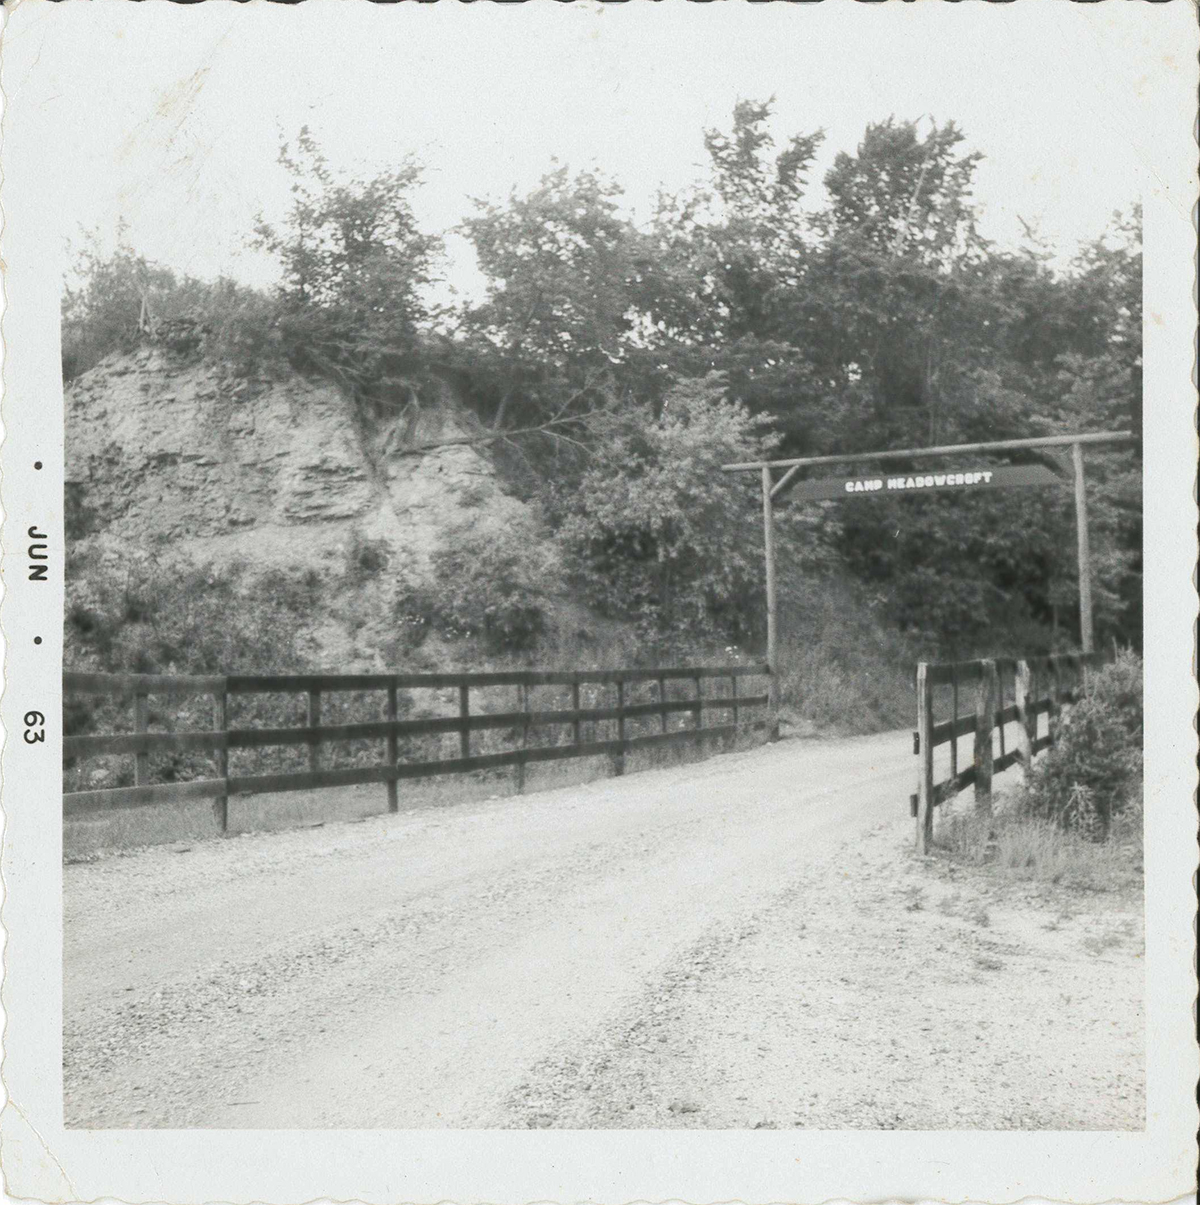 On July 28, 1959, the Camp Meadowcroft sign was hung up along the entrance road.